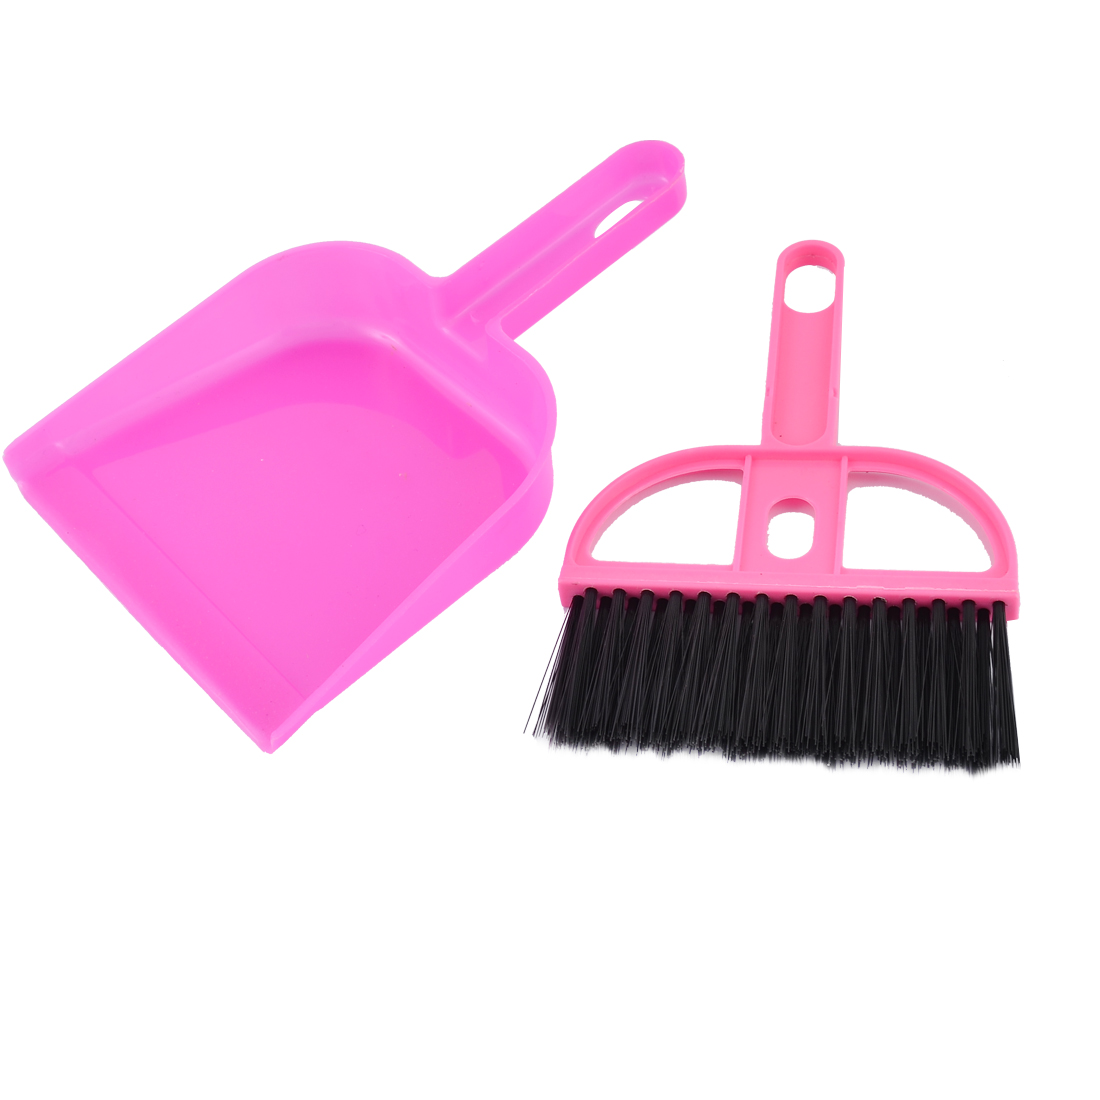 Computer Keyboard Restaurant Table Plastic Cleaning Kit Mini Brush Dustpan Set